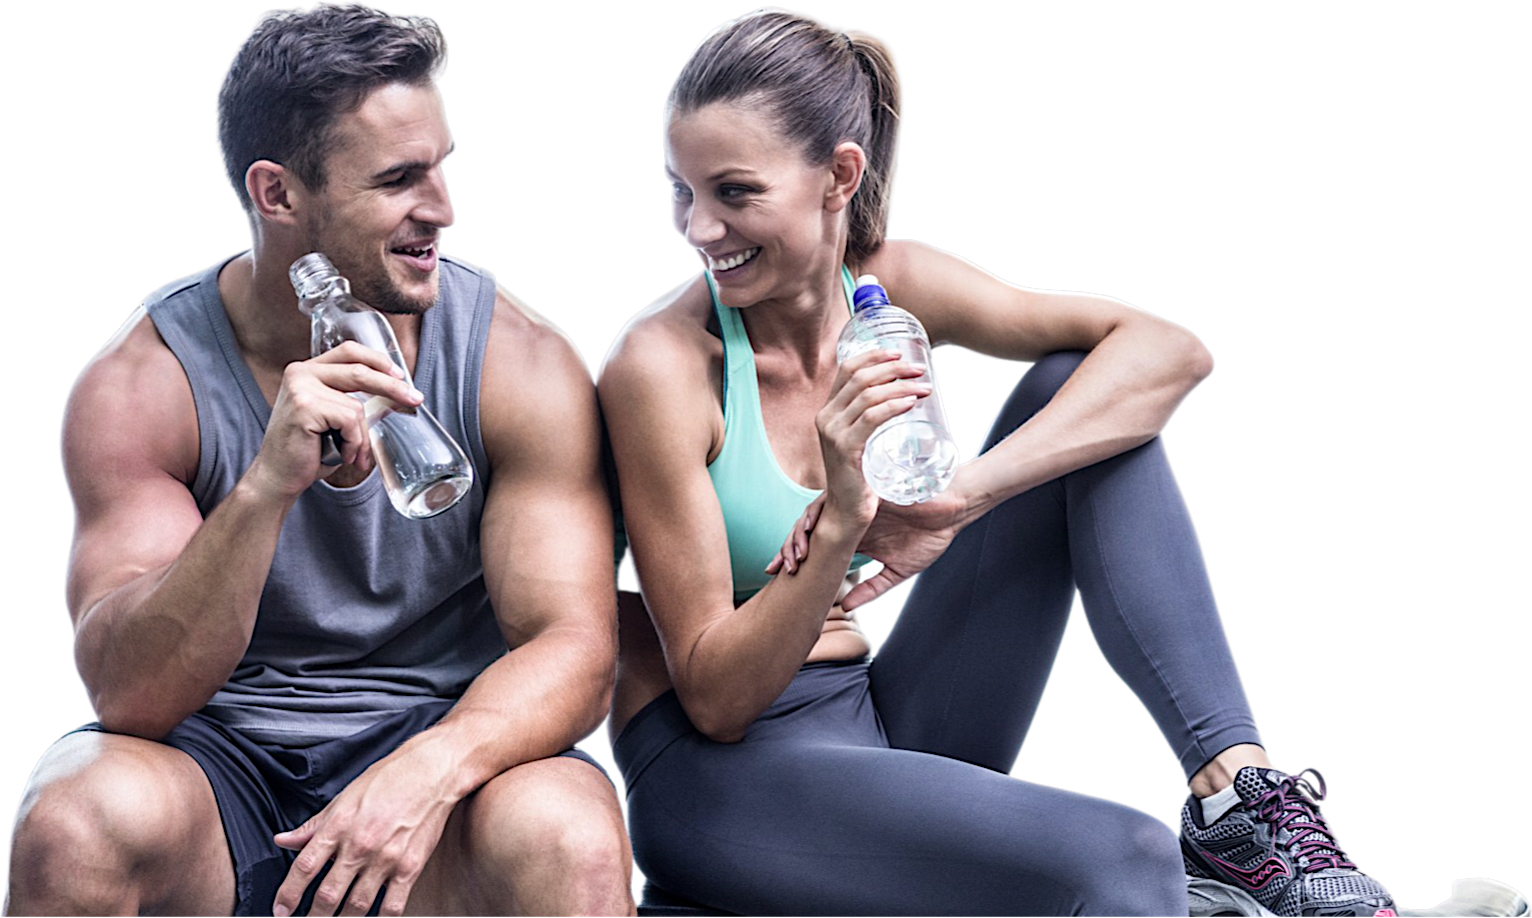 Athletic couple drinking water on bench at the gym